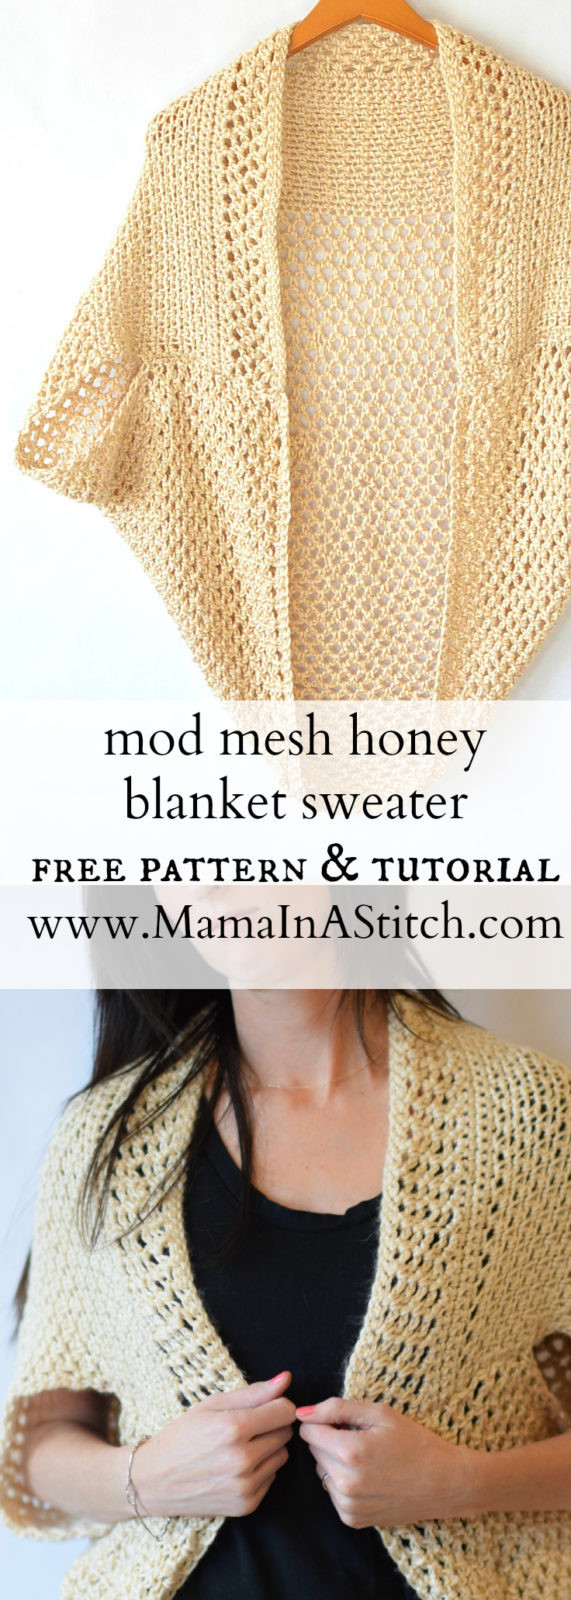 Easy Crochet Cardigan Awesome Mod Mesh Honey Blanket Sweater – Mama In A Stitch Of Easy Crochet Cardigan Best Of Blue Lagoon Easy Cardigan Free Crochet Pattern